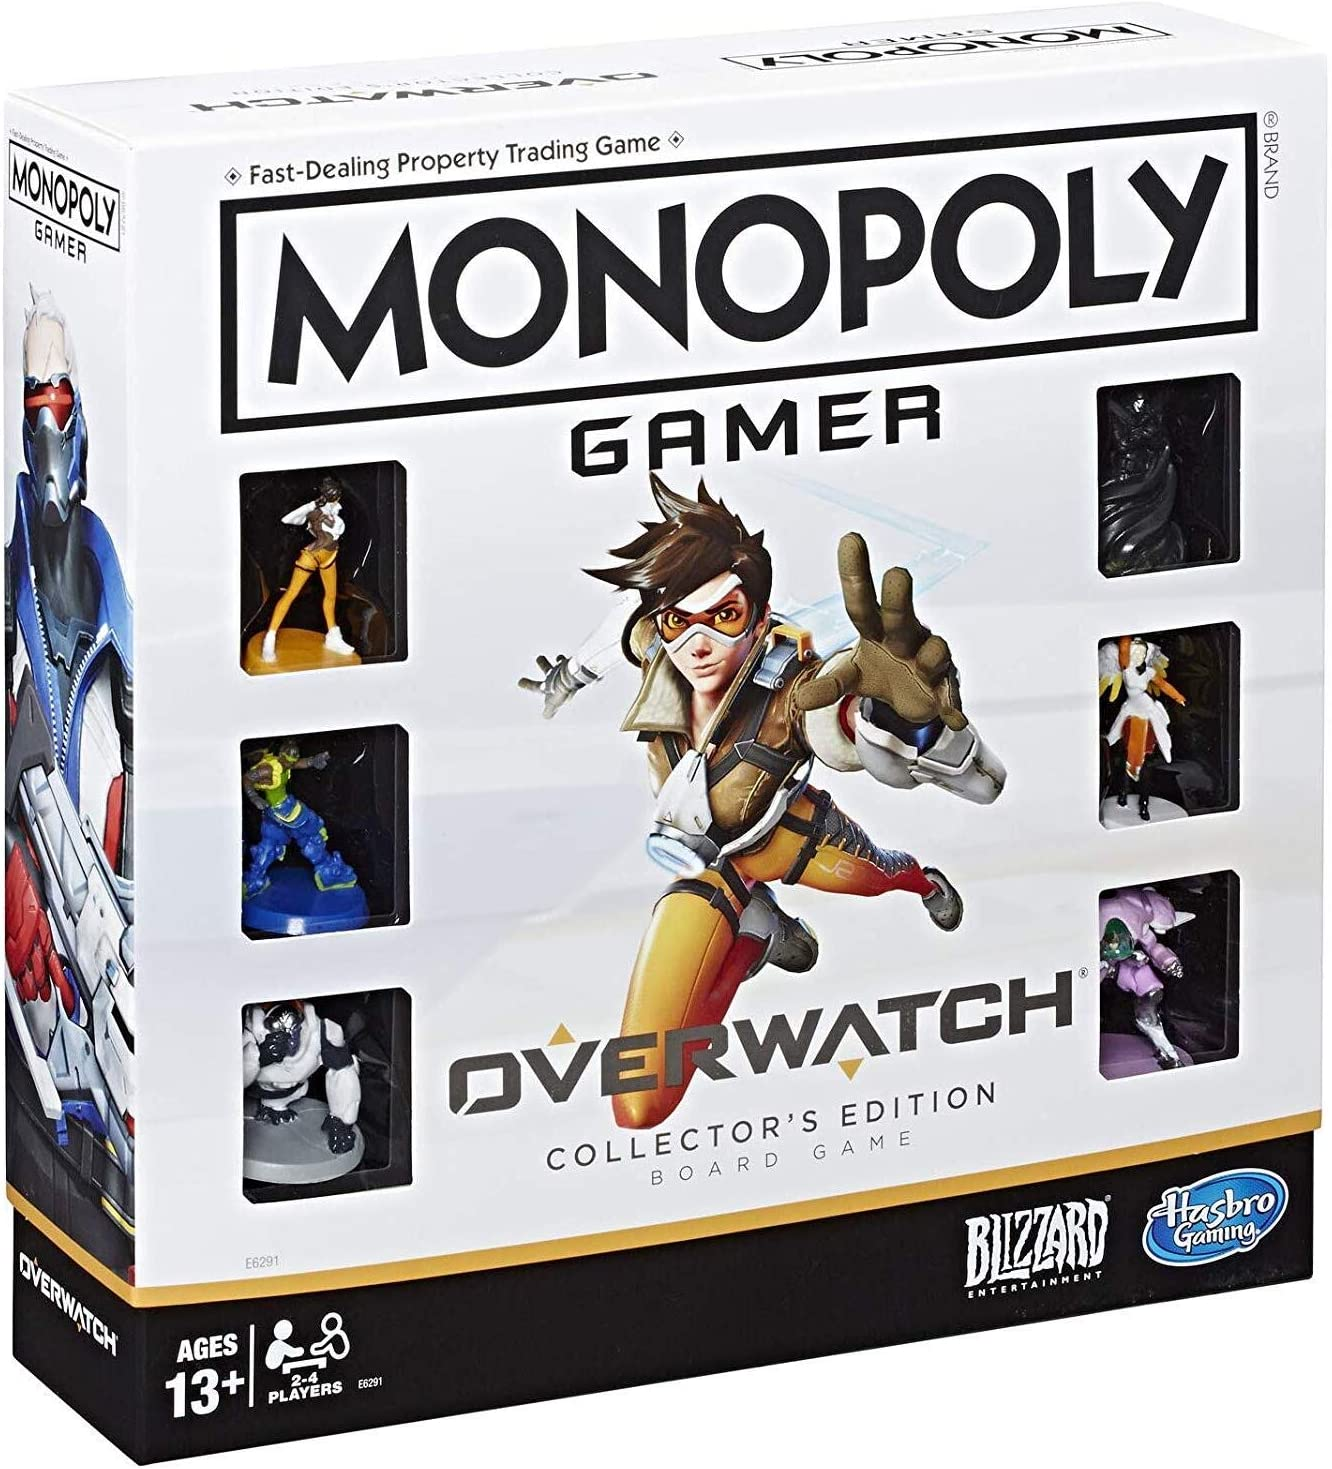 19. Monopoly Gamer Overwatch Collector's Edition Board Game